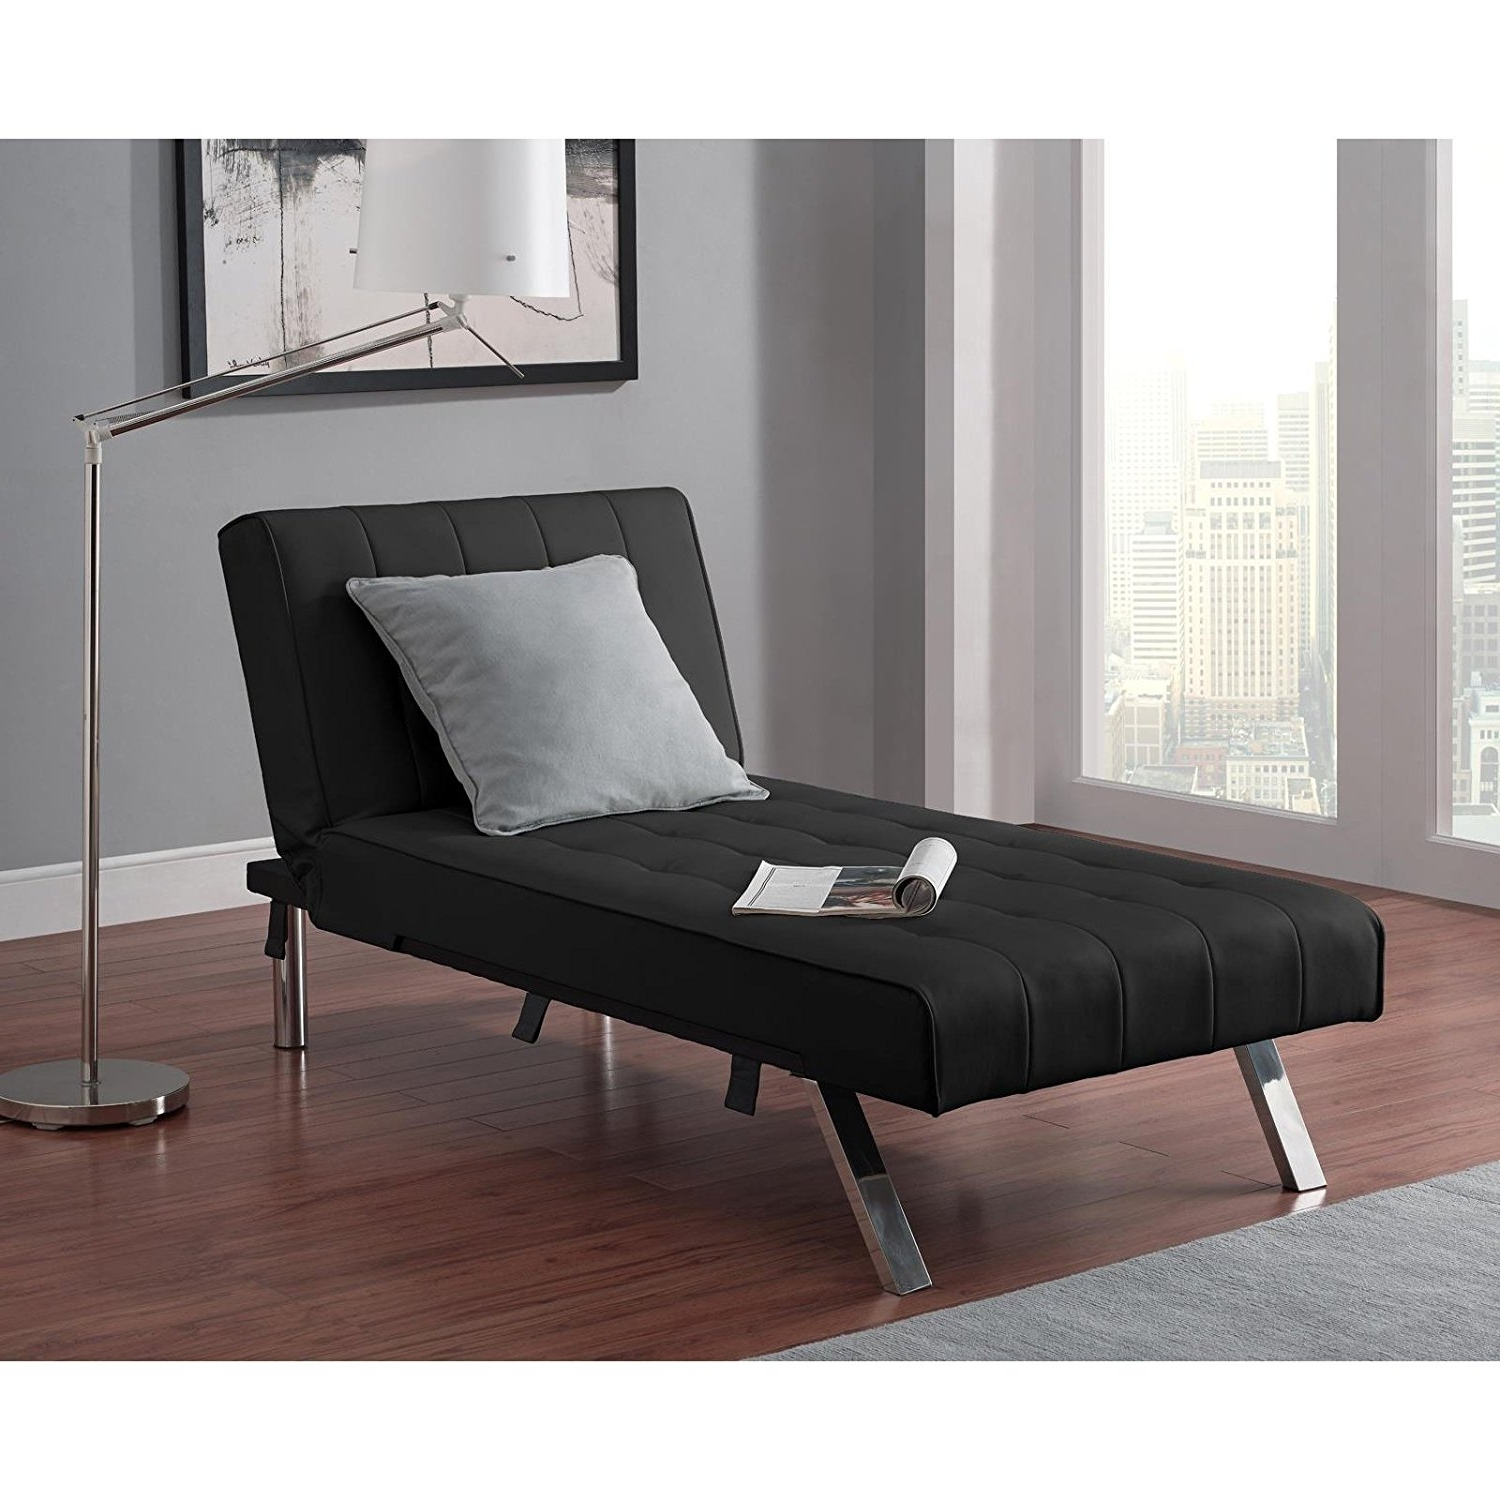 Widely Used Amazon: Emily Futon With Chaise Lounger Super Bonus Set Black In Emily Futon Chaise Loungers (View 5 of 15)